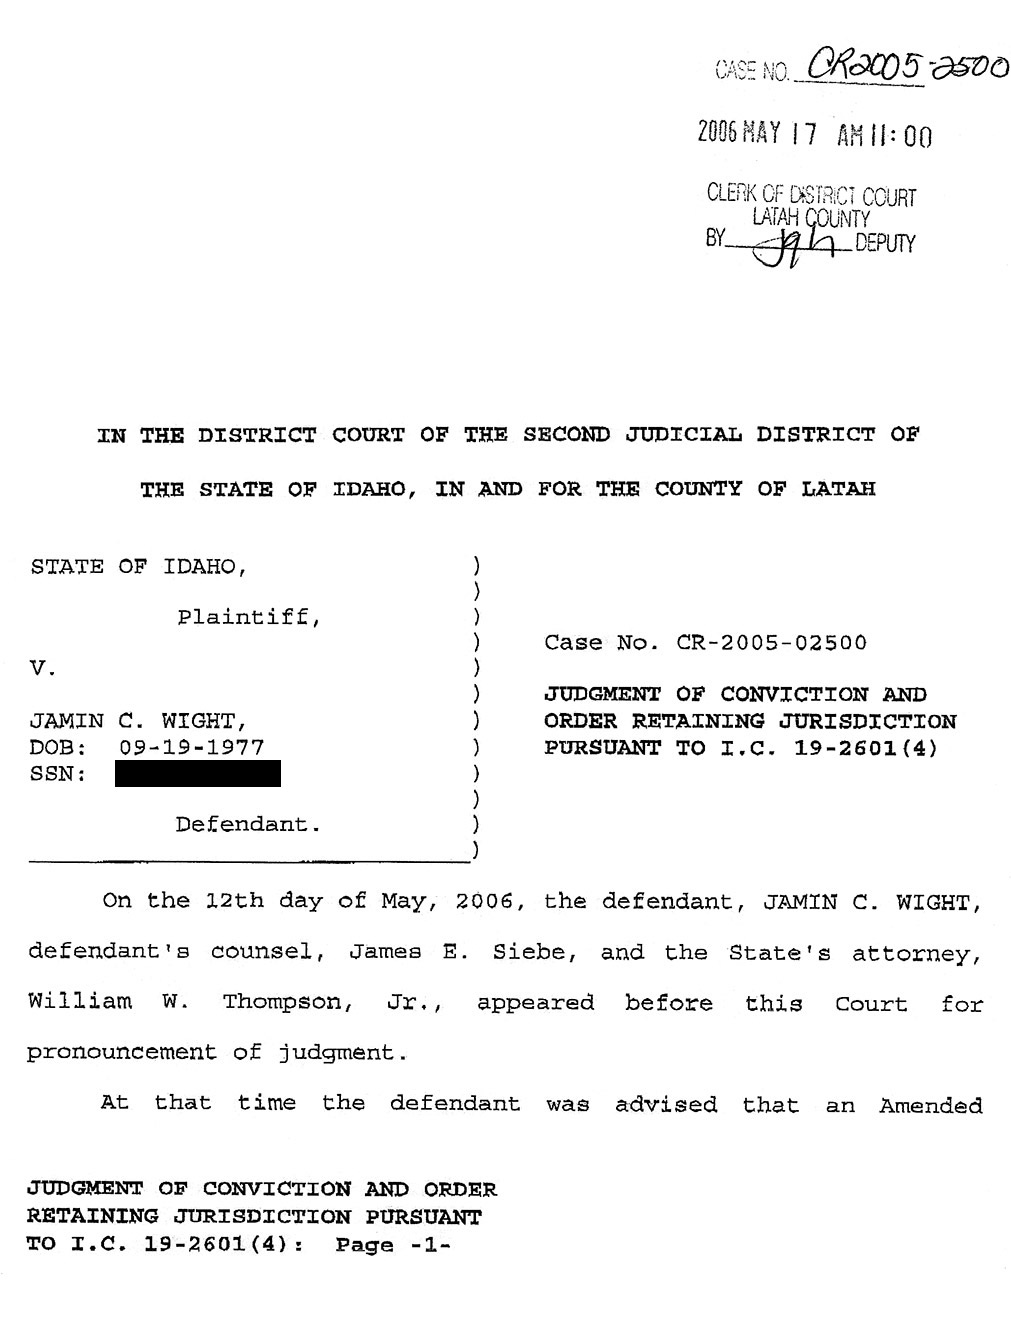 Jamin Wight: Judgment of Conviction and Order Retaining Jurisdiction page 1